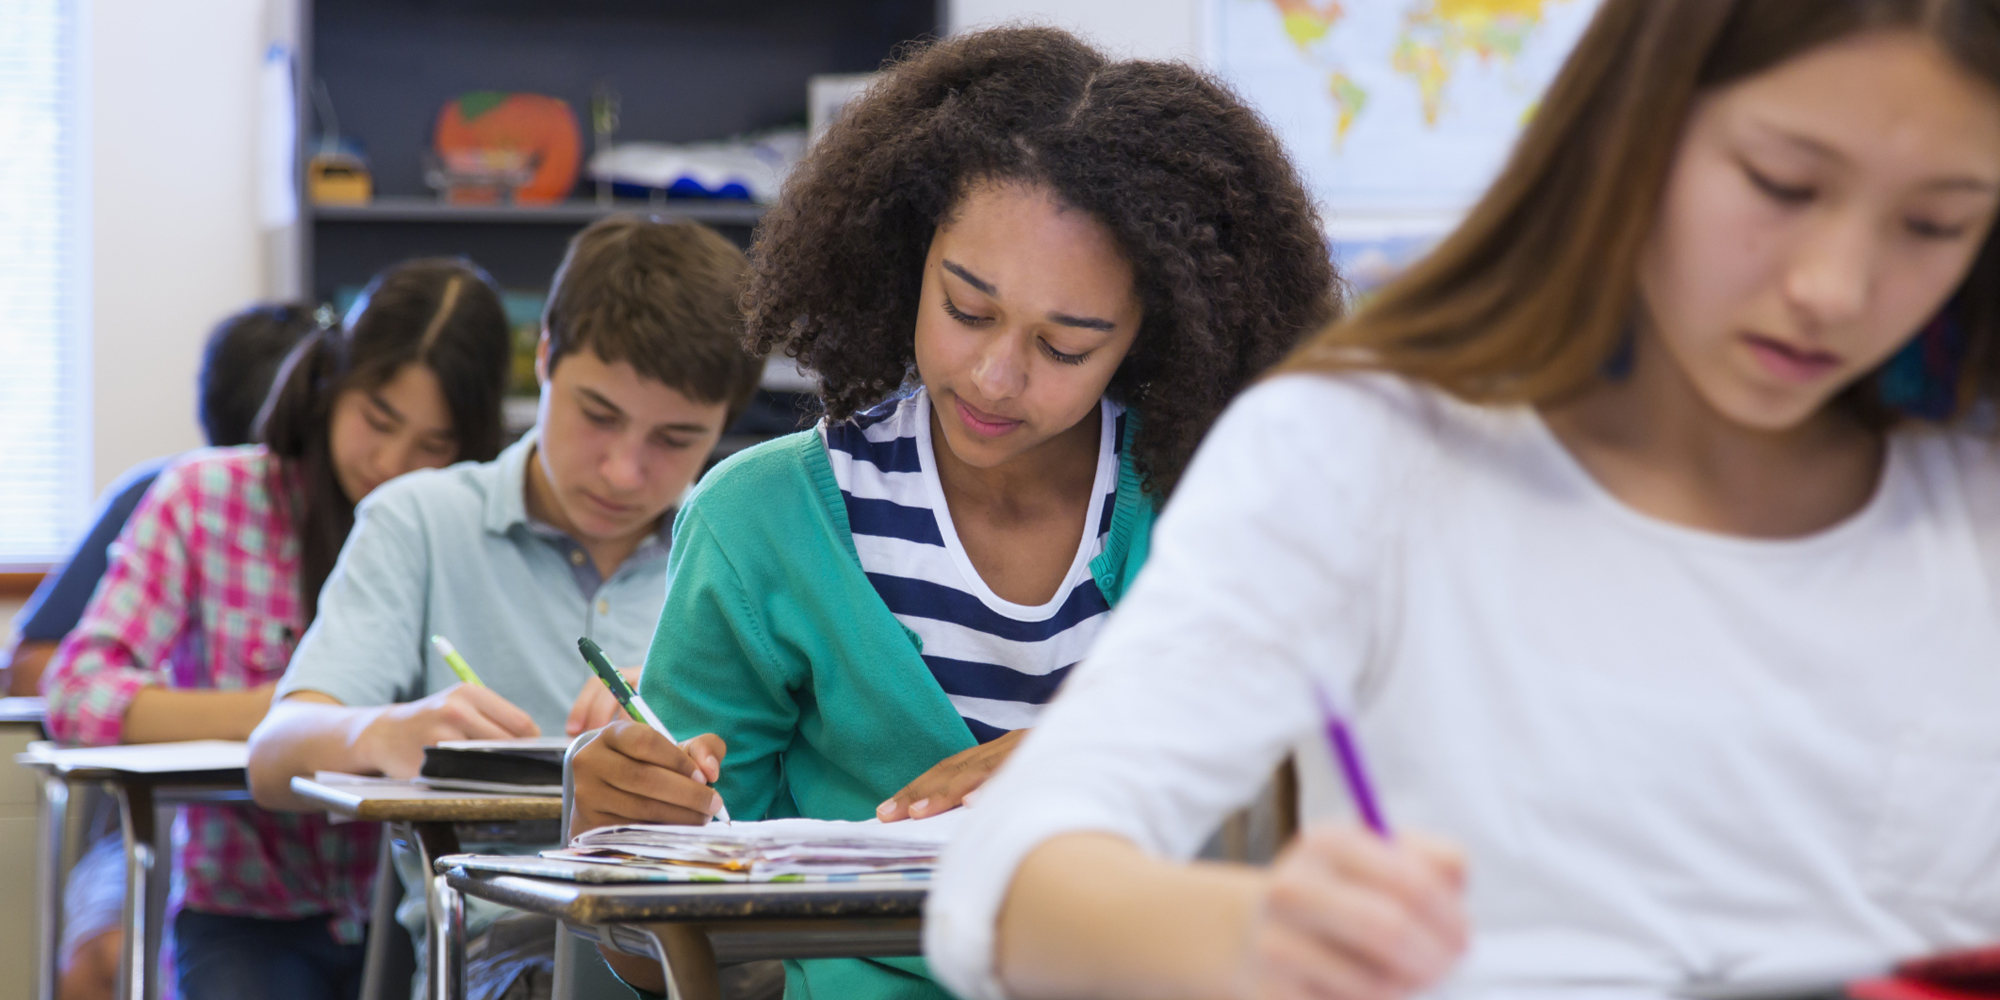 middle school is most stressful for moms   new parenting study